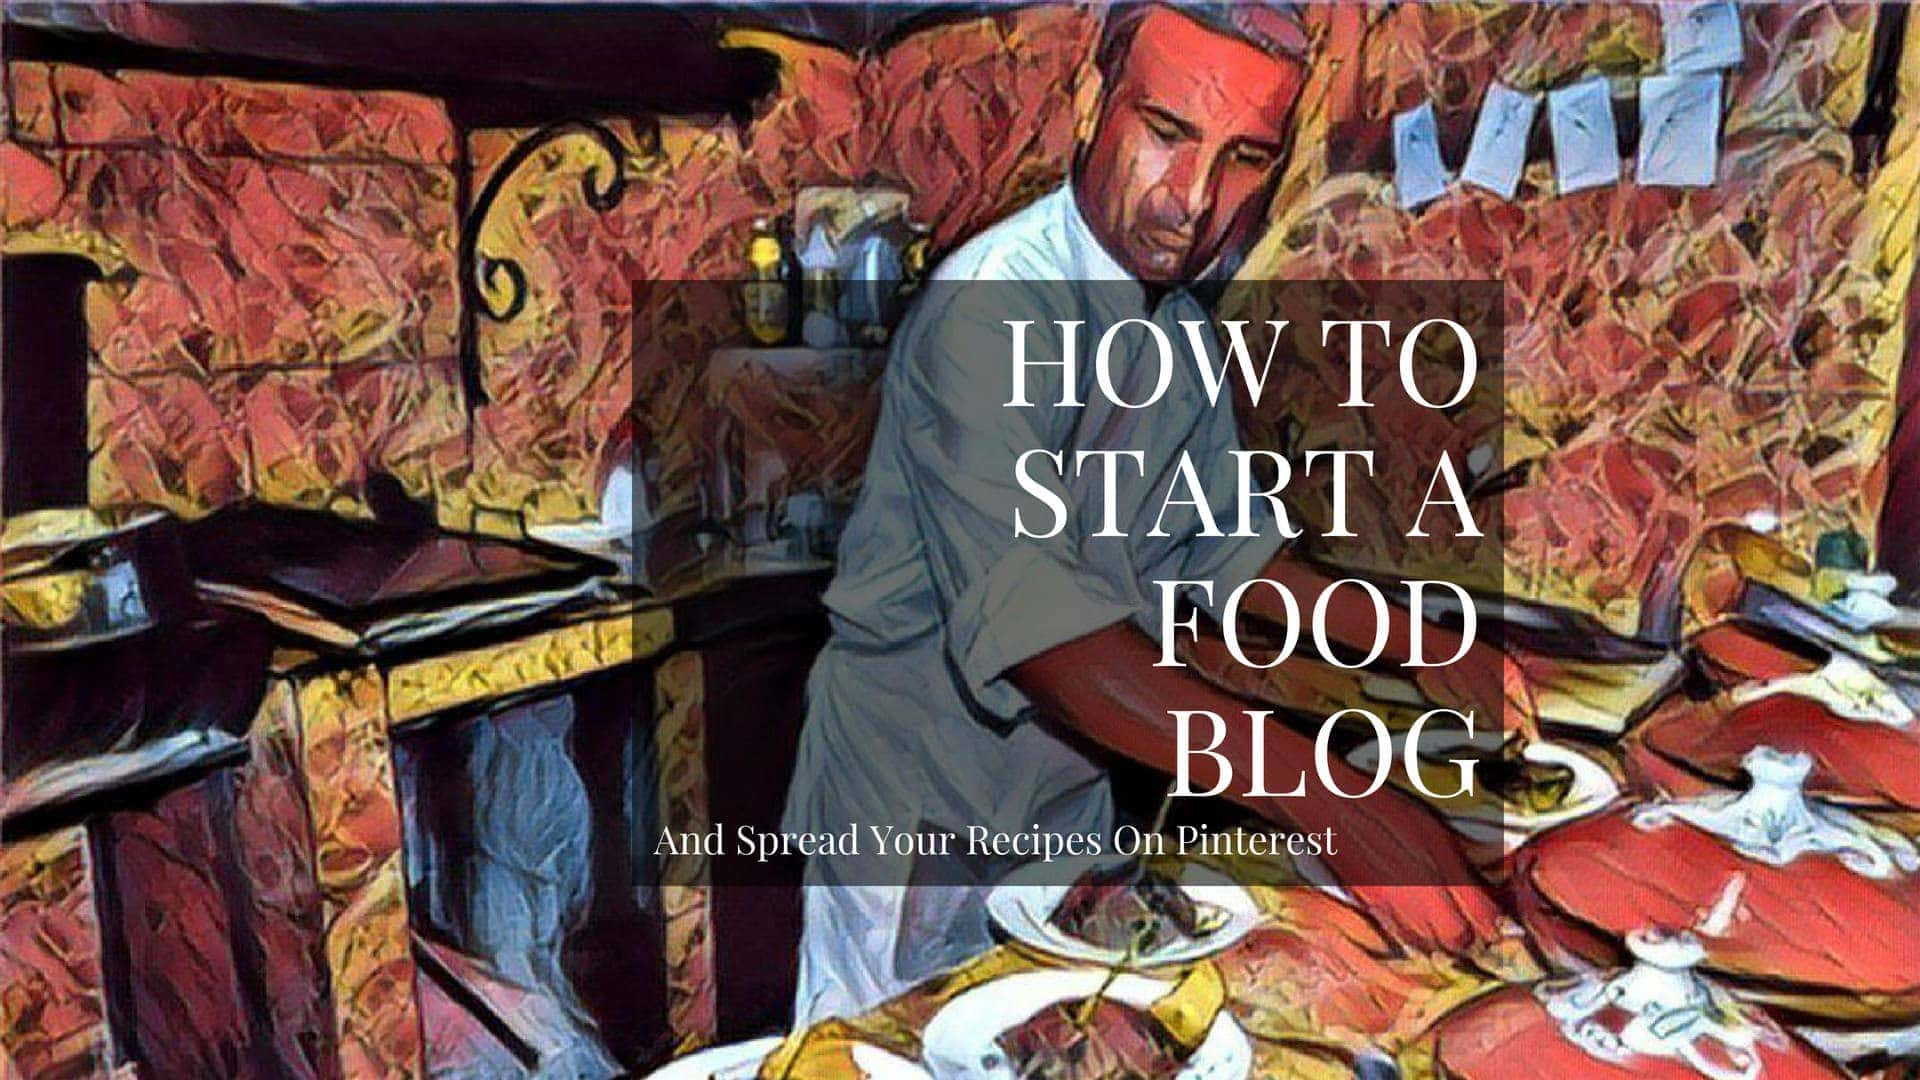 Starting a food blog is a great way to document your recipes, share your love for cooking with others and become an even better and more creative cook.